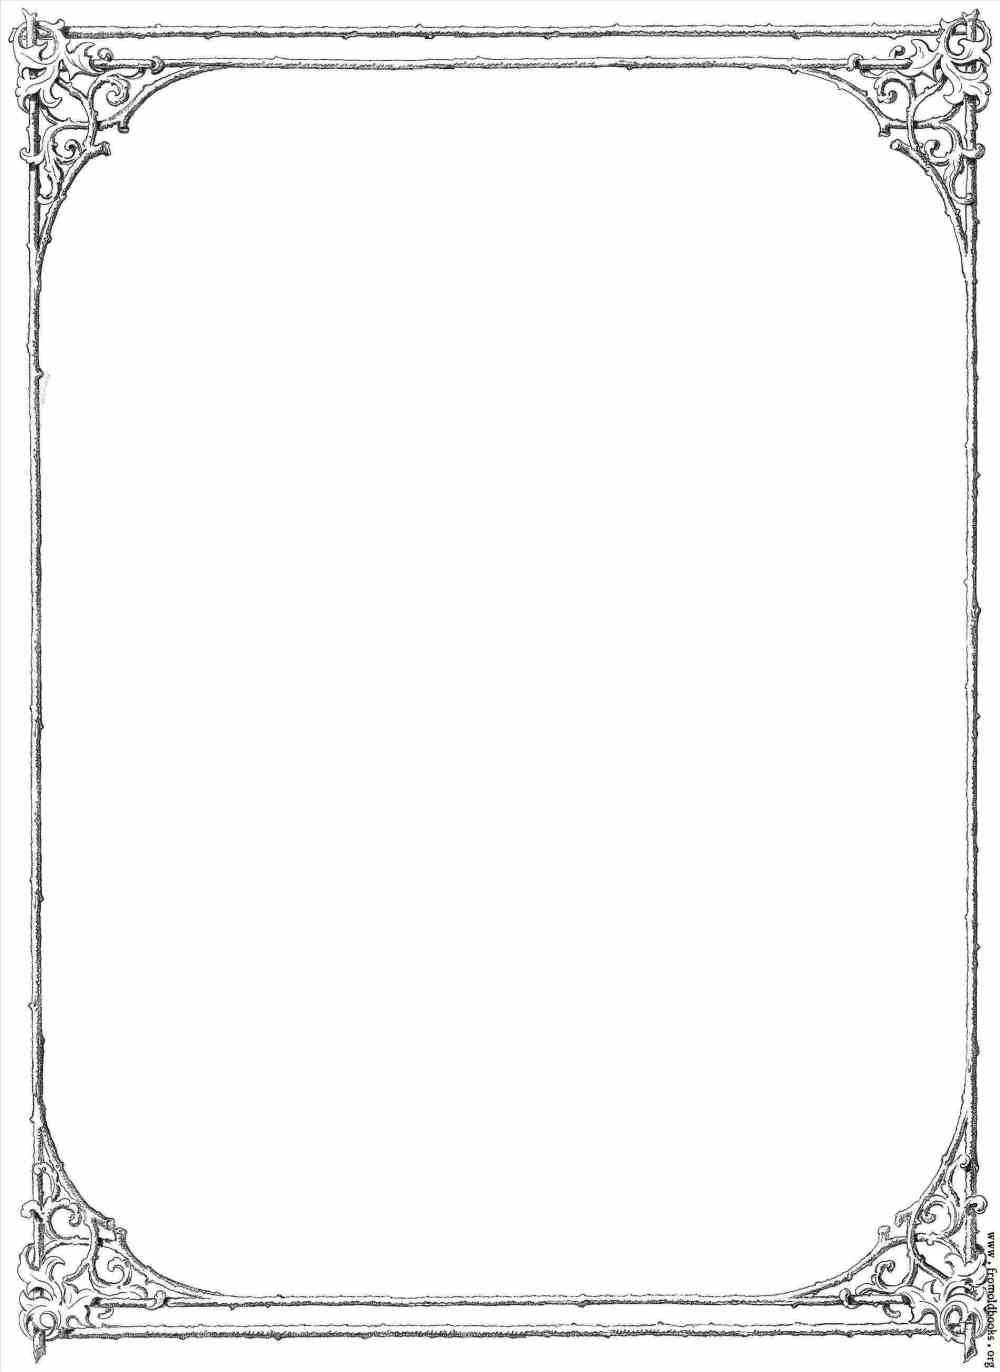 medium resolution of frame clipart victorian border of twigs and